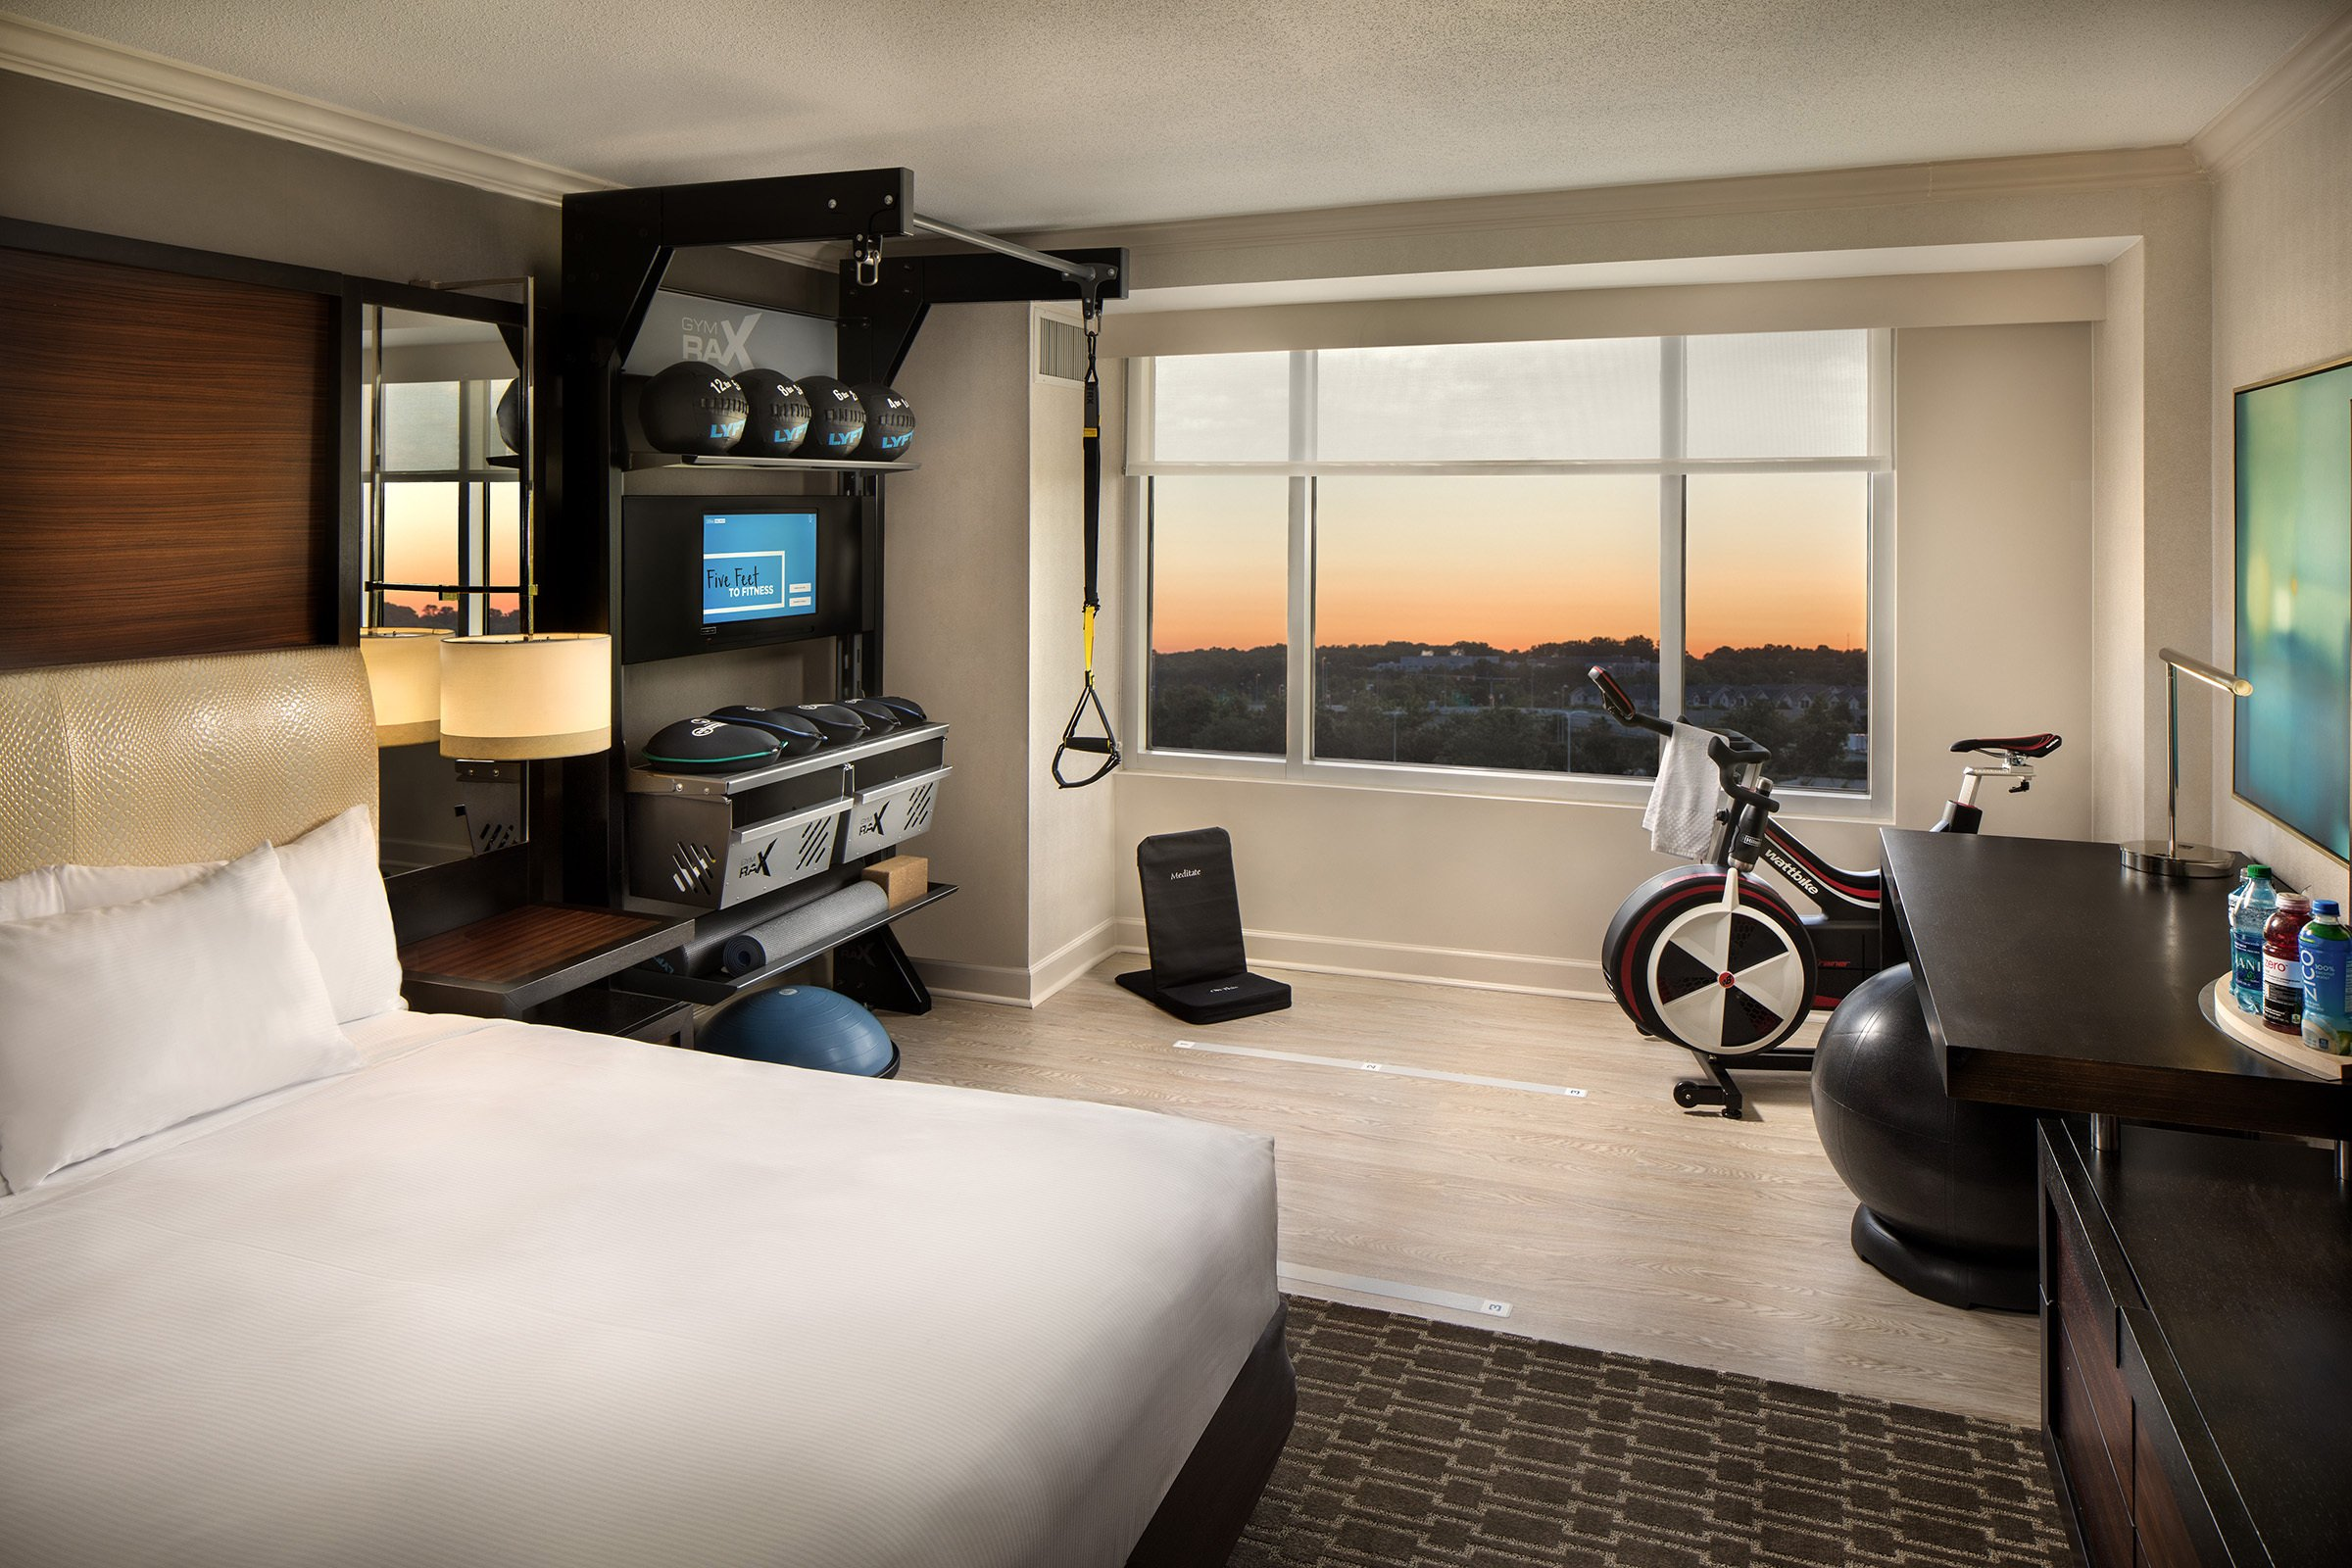 Hilton's new Five Feet to Fitness guestrooms let guests work out in privacy.